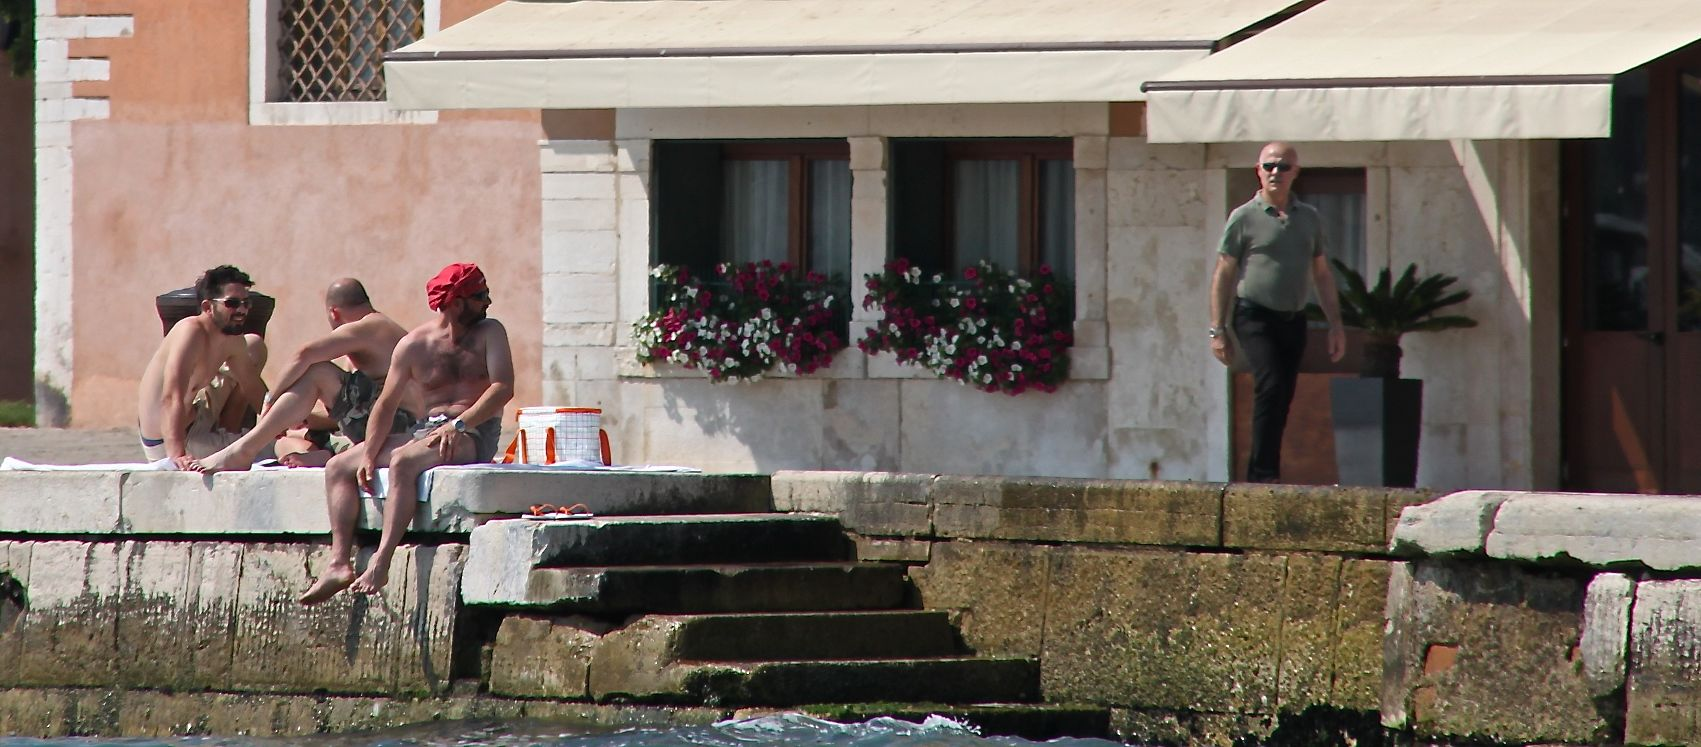 Photo of 3 topless lads sunbathing on the waterfront in Venice, Italy